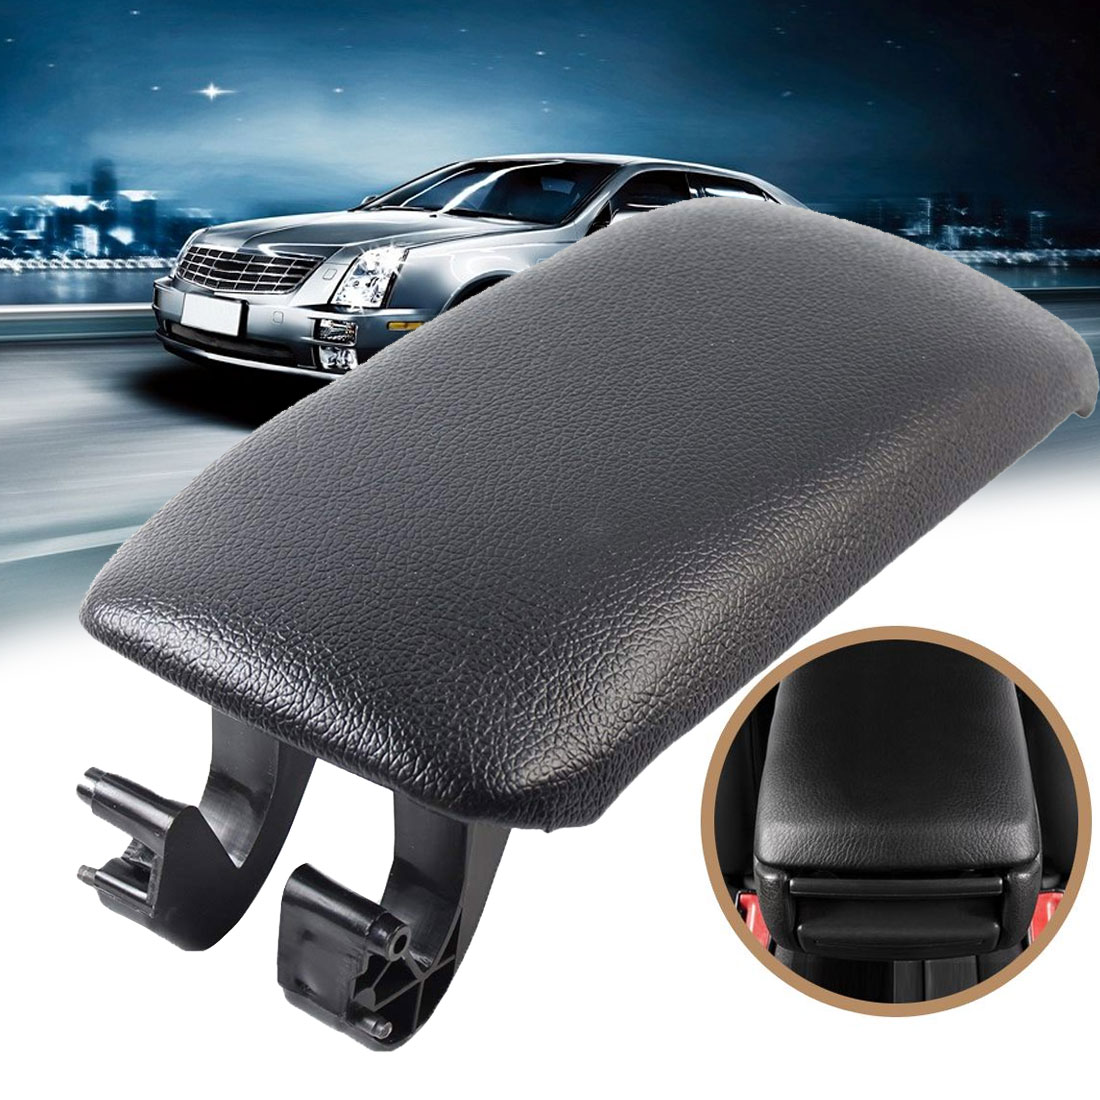 Wall Stickz Car Armrest Cushion Soft Leather Auto Center Console Pad Cover Handrail Box Universal Ergonomic Design Decoration Cushion fit Audi Accessory